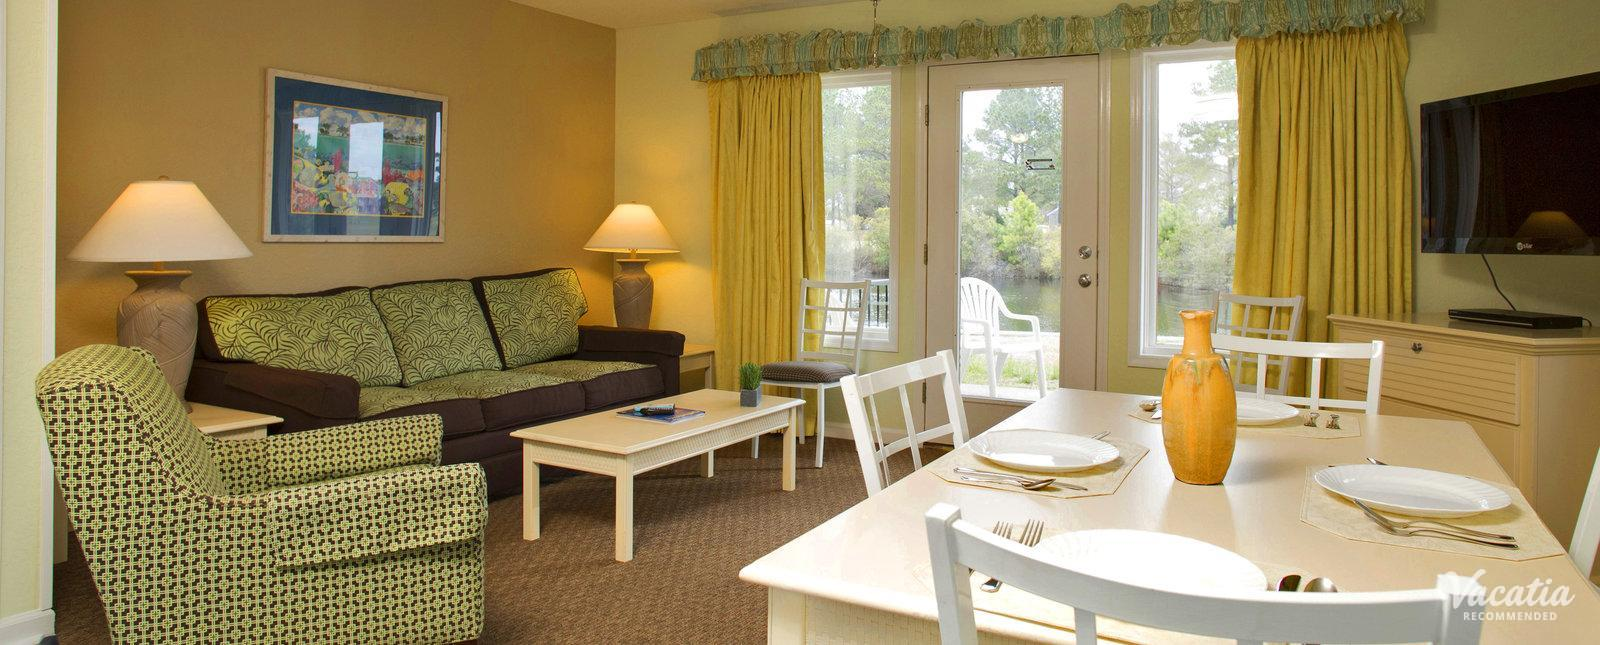 Plantation Resort of Myrtle Beach large vacation rentals